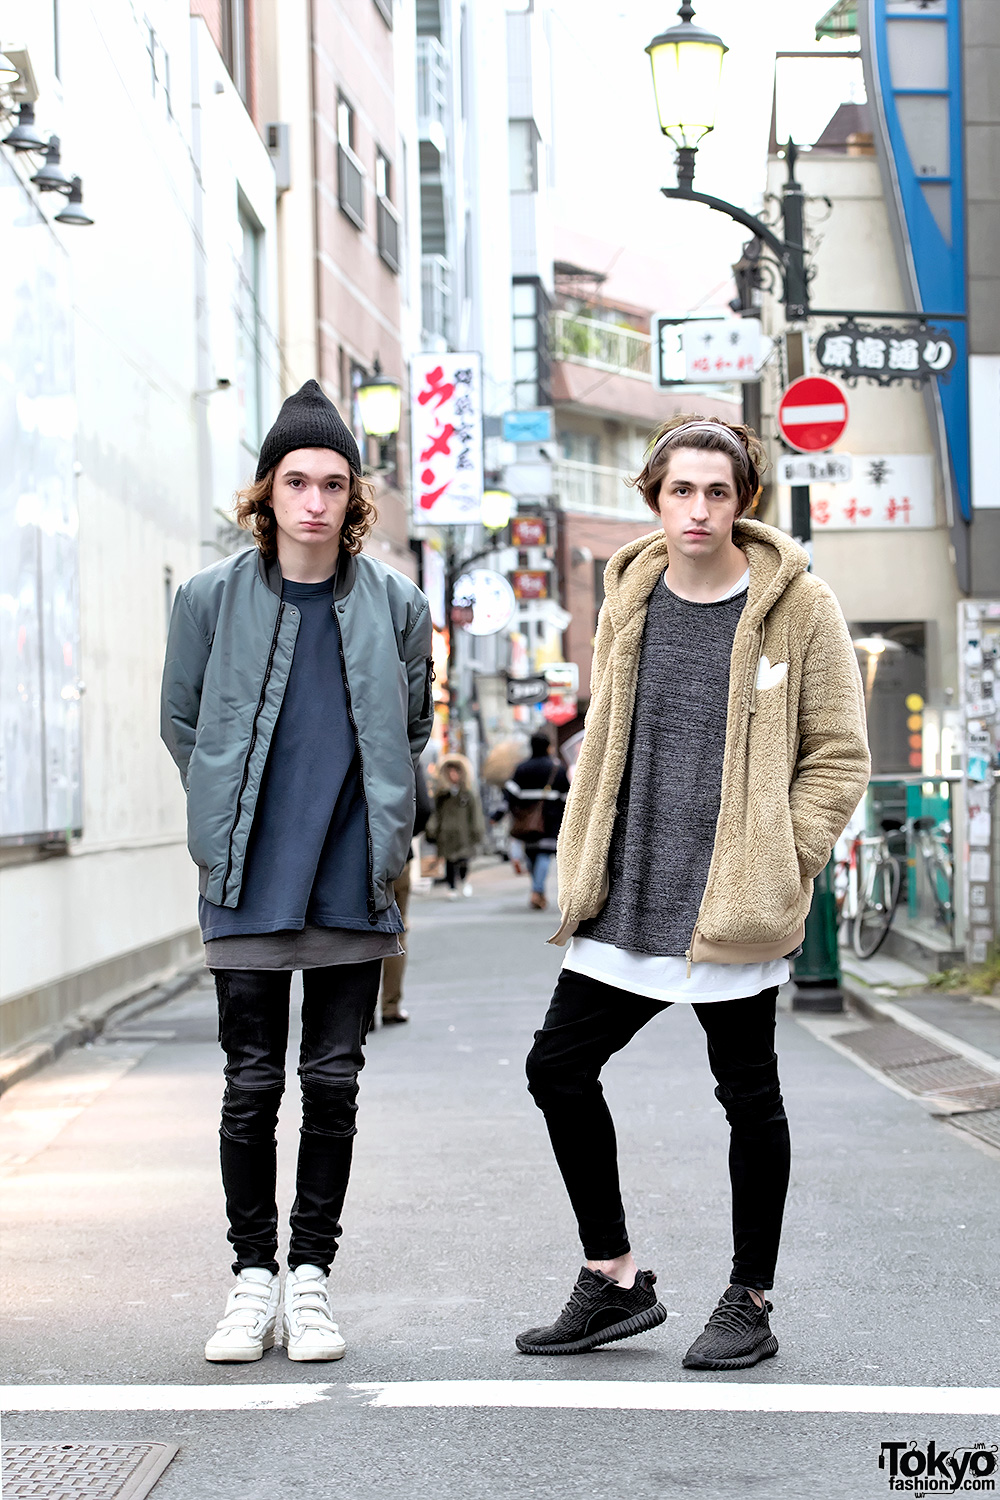 Electronic Musician Porter Robinson & Brother in Harajuku in Raf Simons, Yeezy Boosts & Bomber Jacket